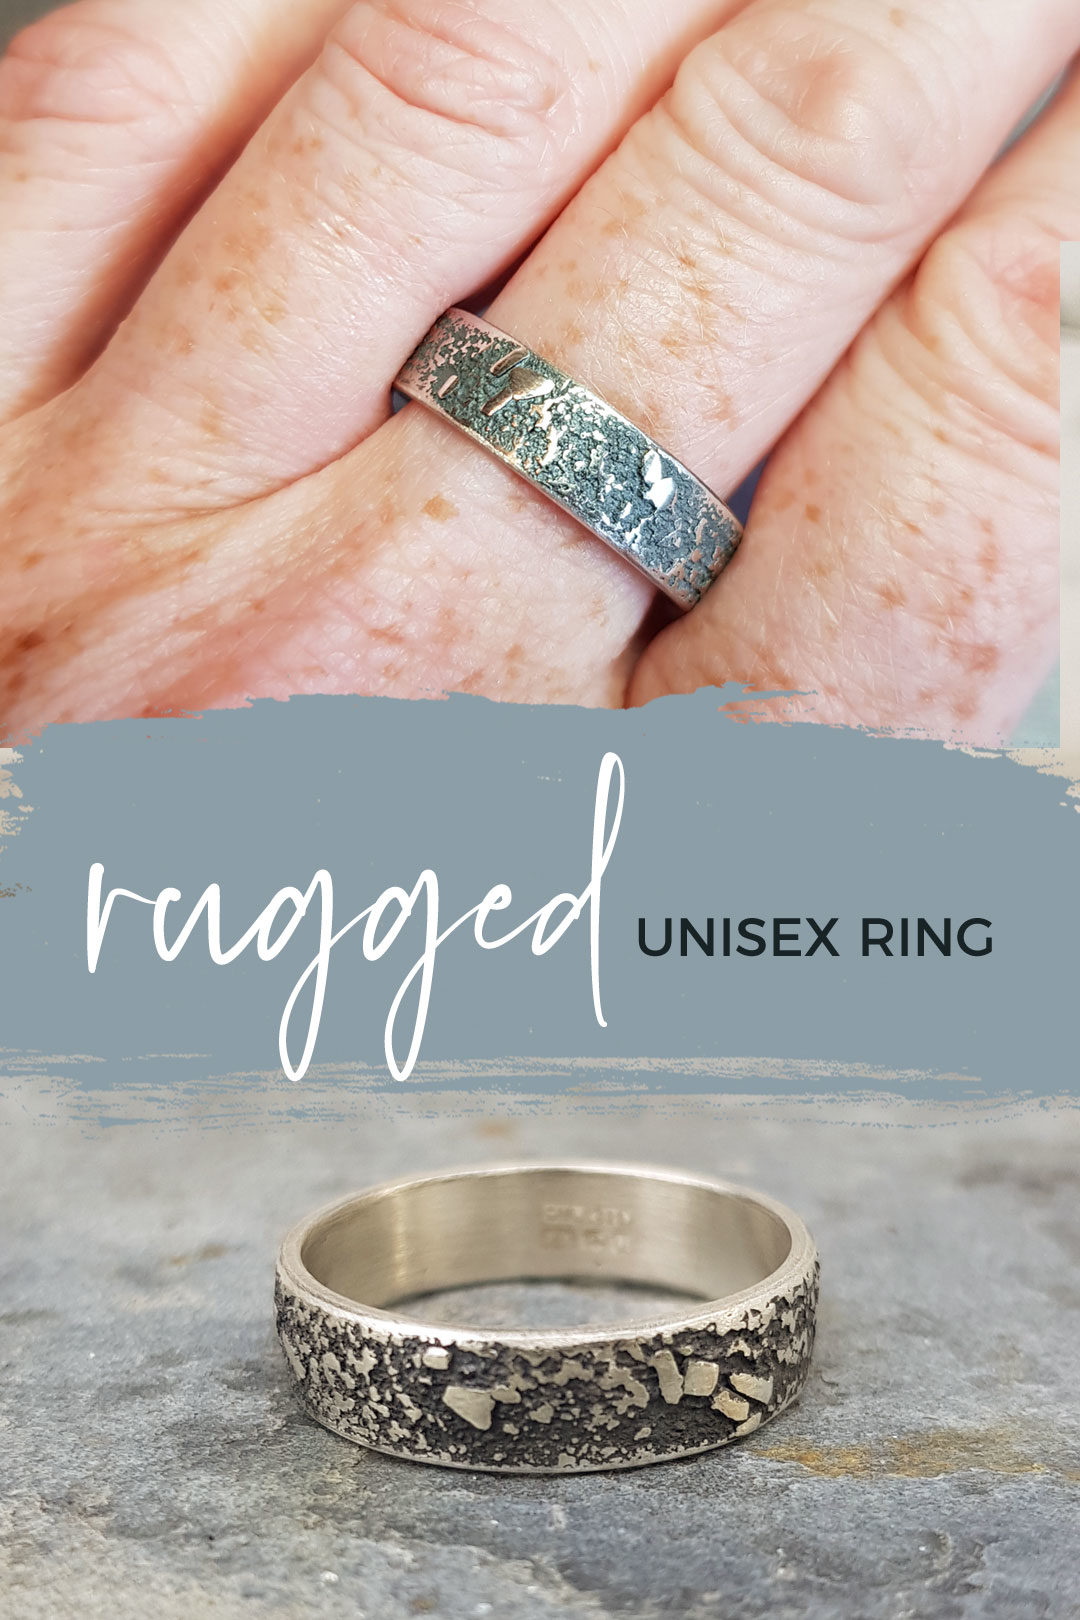 Unisex ring in textured sterling silver